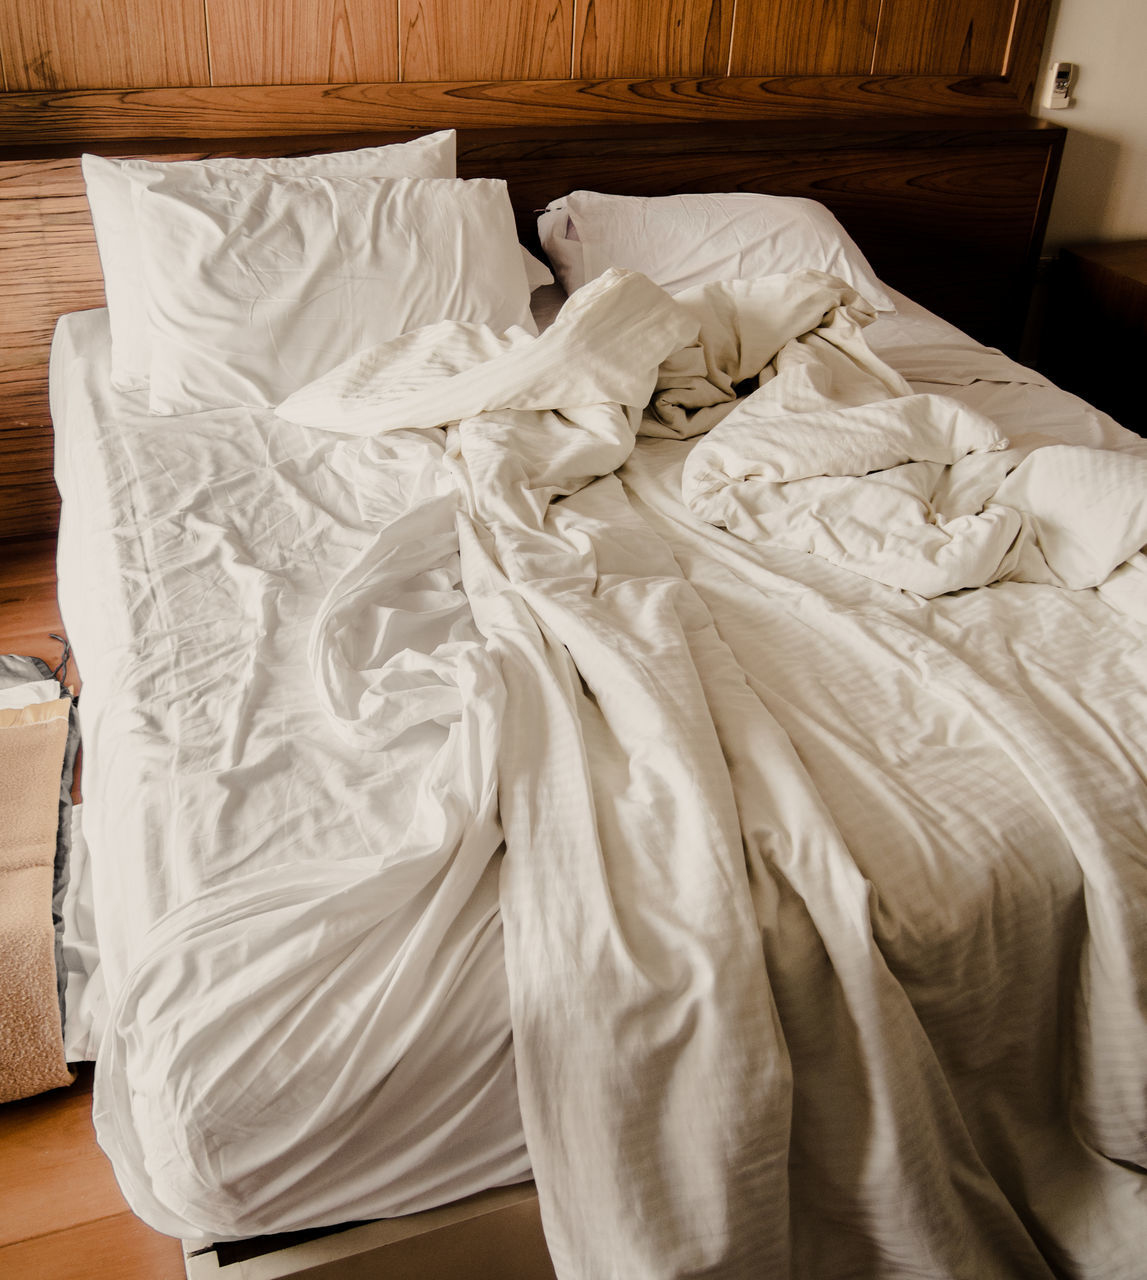 bed, bedroom, indoors, sheet, no people, home interior, crumpled, high angle view, pillow, day, close-up